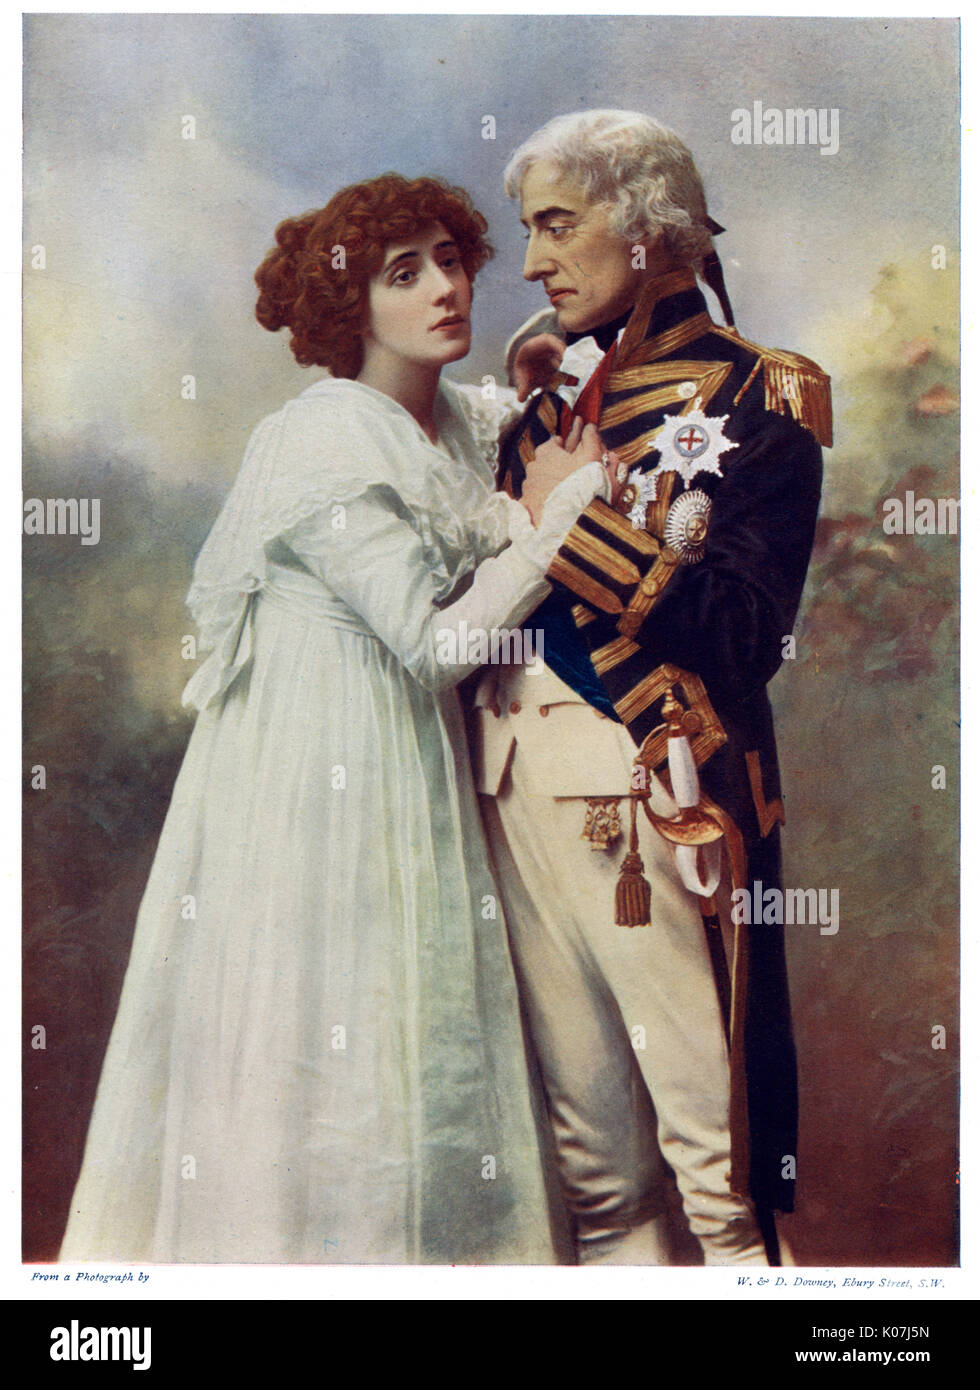 Forbes Robertson (1853 - 1937) and Mrs. Patrick Campbell (1865 b 1940).  Johnston Forbes Robertson was an English actor and theatre manager, considered the finest Hamlet of the Victorian era and one of the finest actors of his time. Mrs Patrick Campbell, born Beatrice Stella Tanner, also known as ';Mrs Pat';, was an English stage actress. Shown here in costume as Nelson and Lady Hamilton in ';Nelson's Enchantress';, a play by Risden Home.     Date: 1899 - Stock Image